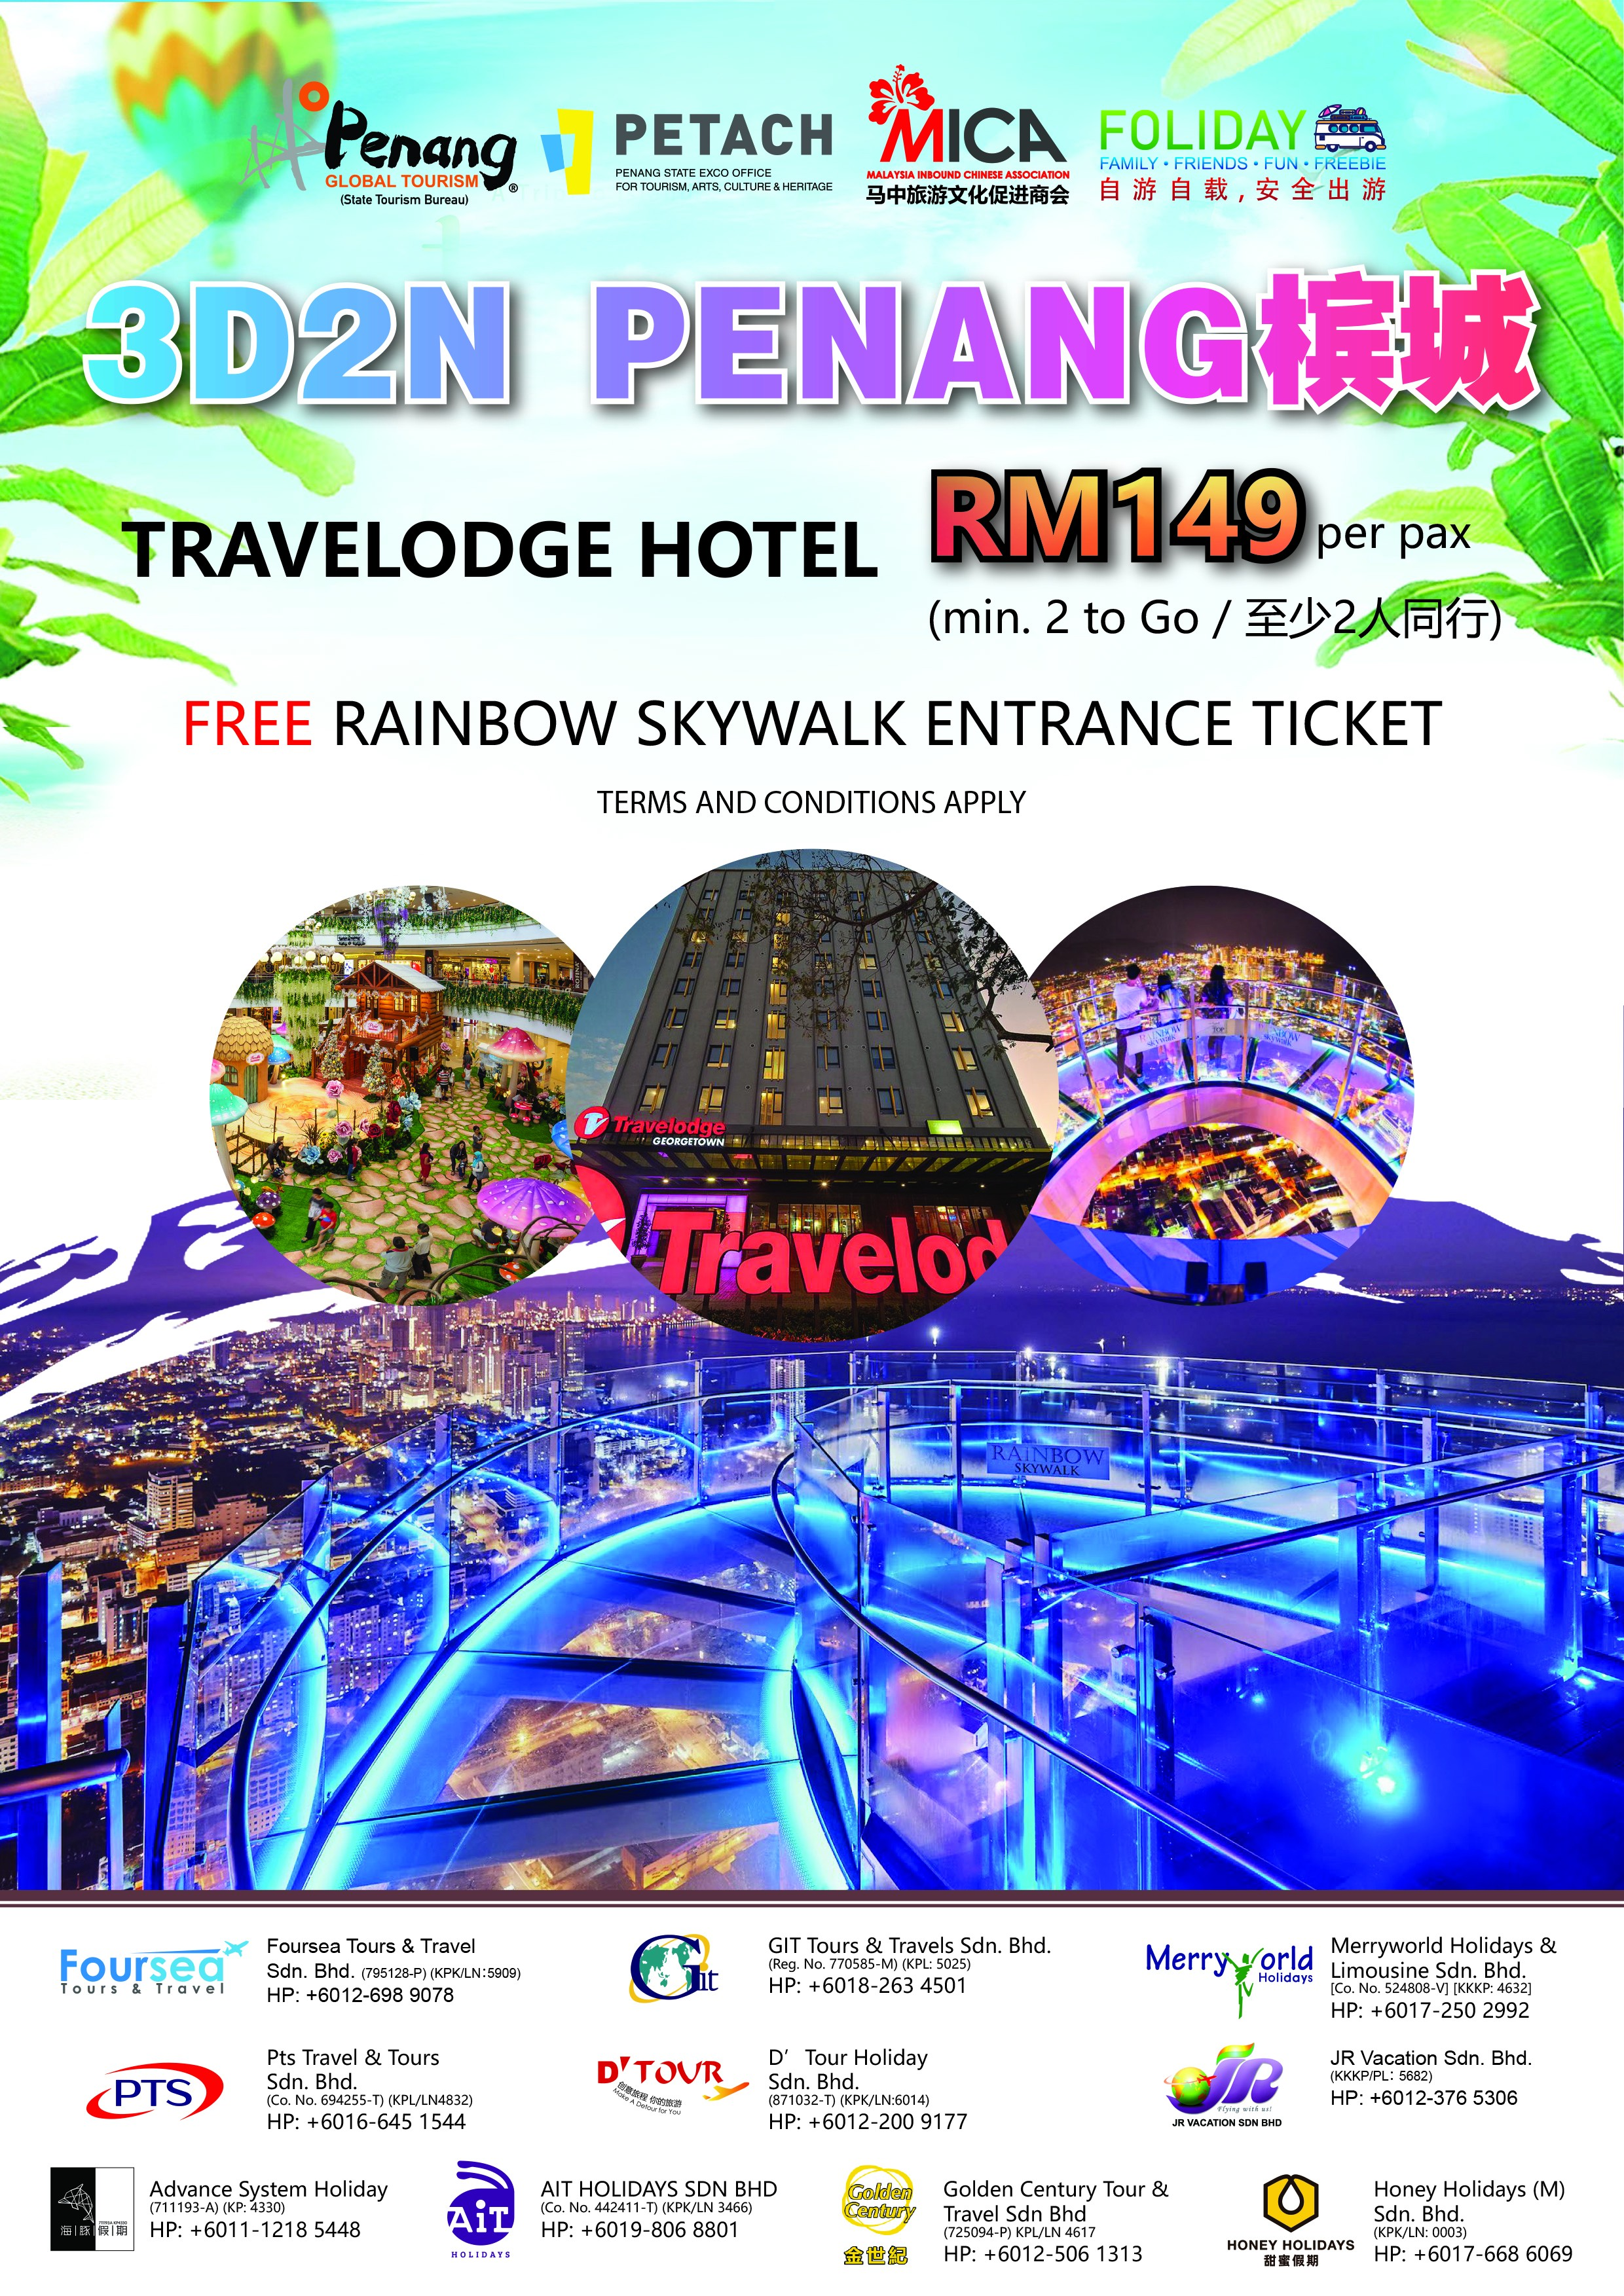 3D2N Penang - Travelodge Hotel